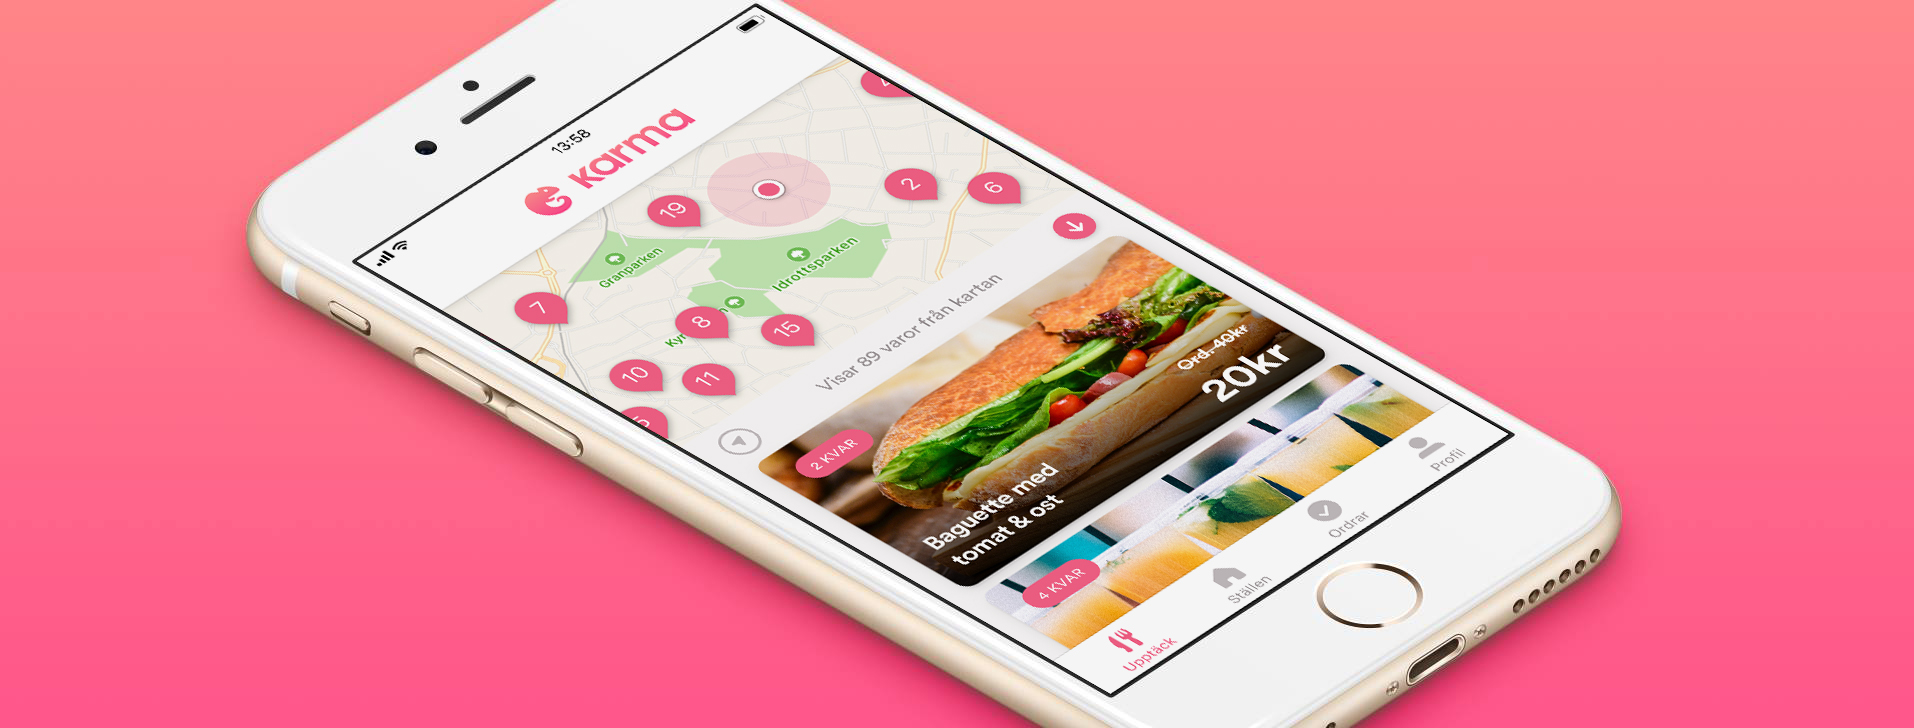 Karma food waste app featured in webloyalty's leisure and hospitality report